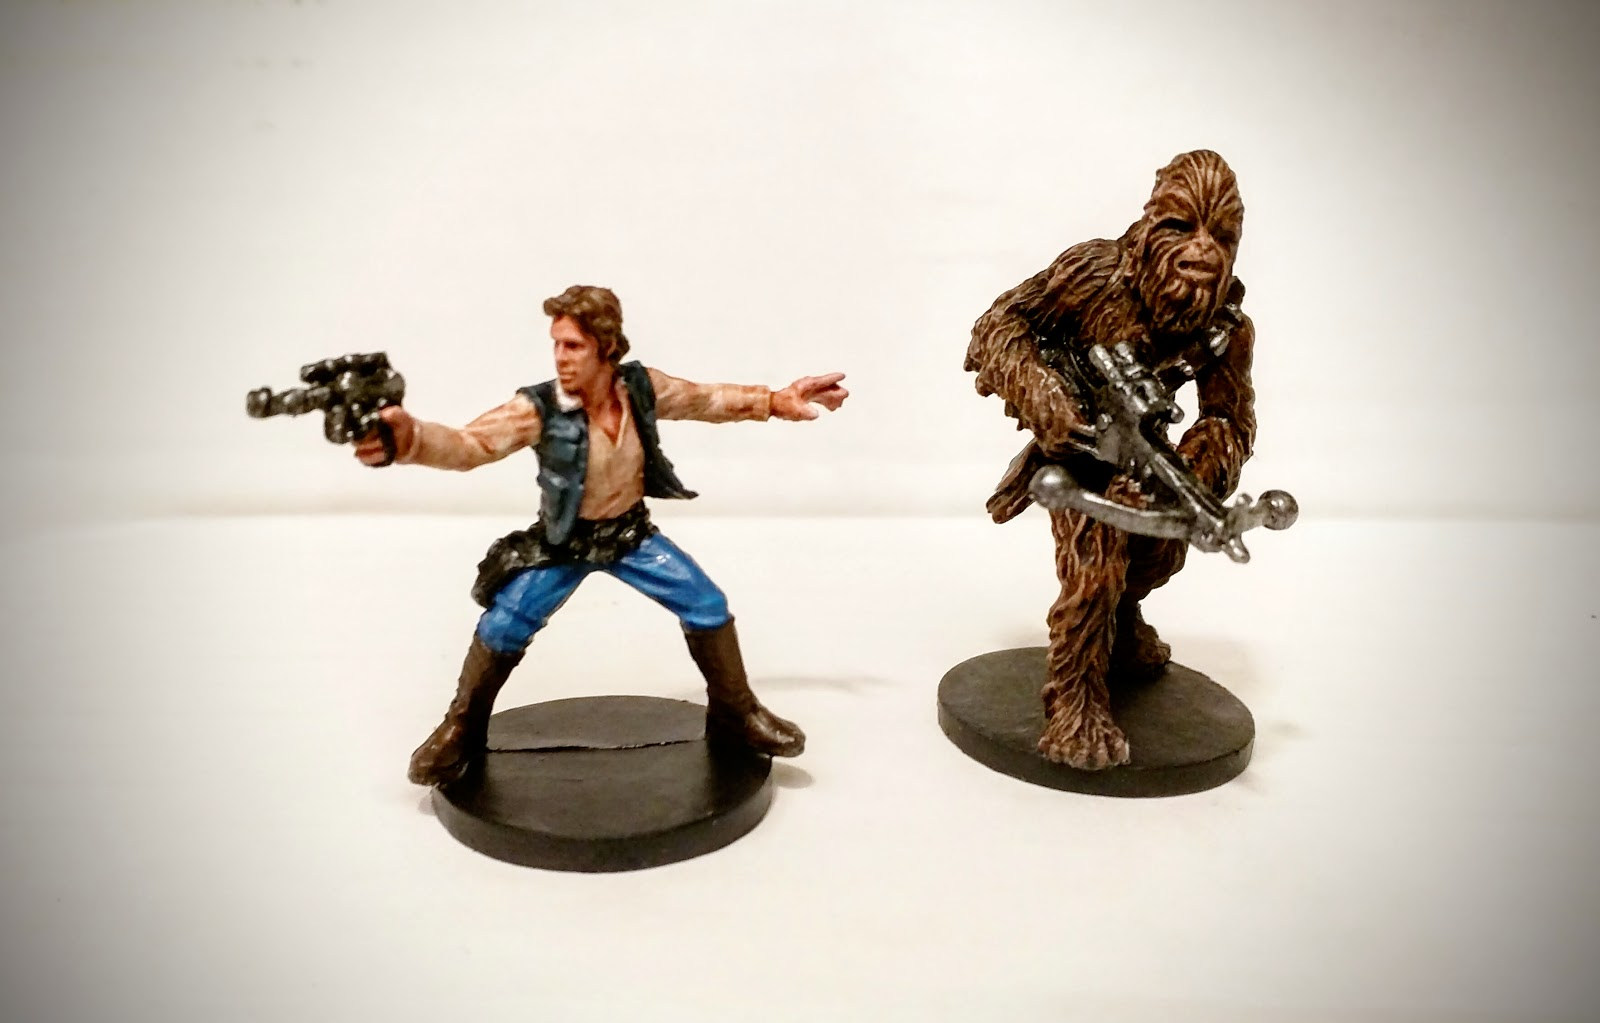 The Half Arsed Gamer July 2015 Ninja Division Painting Cerci Speed Circuit Han And Chewie Doing What They Do Best Looking Cool